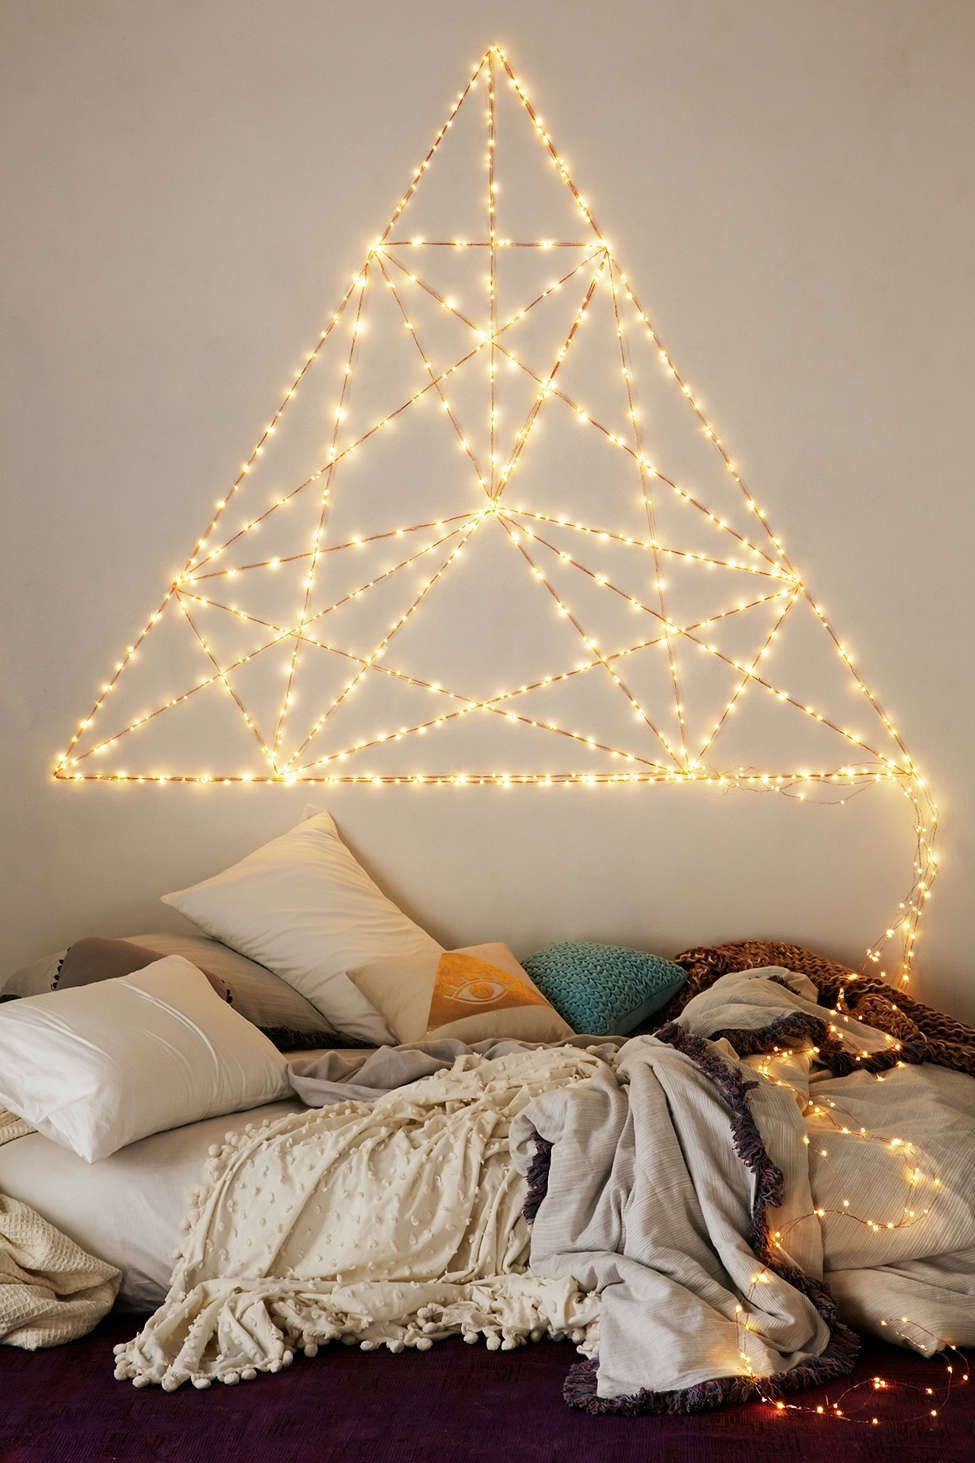 Cosy bedroom fairy lights - 45 Inspiring Ways To Decorate Your Home With String Lights